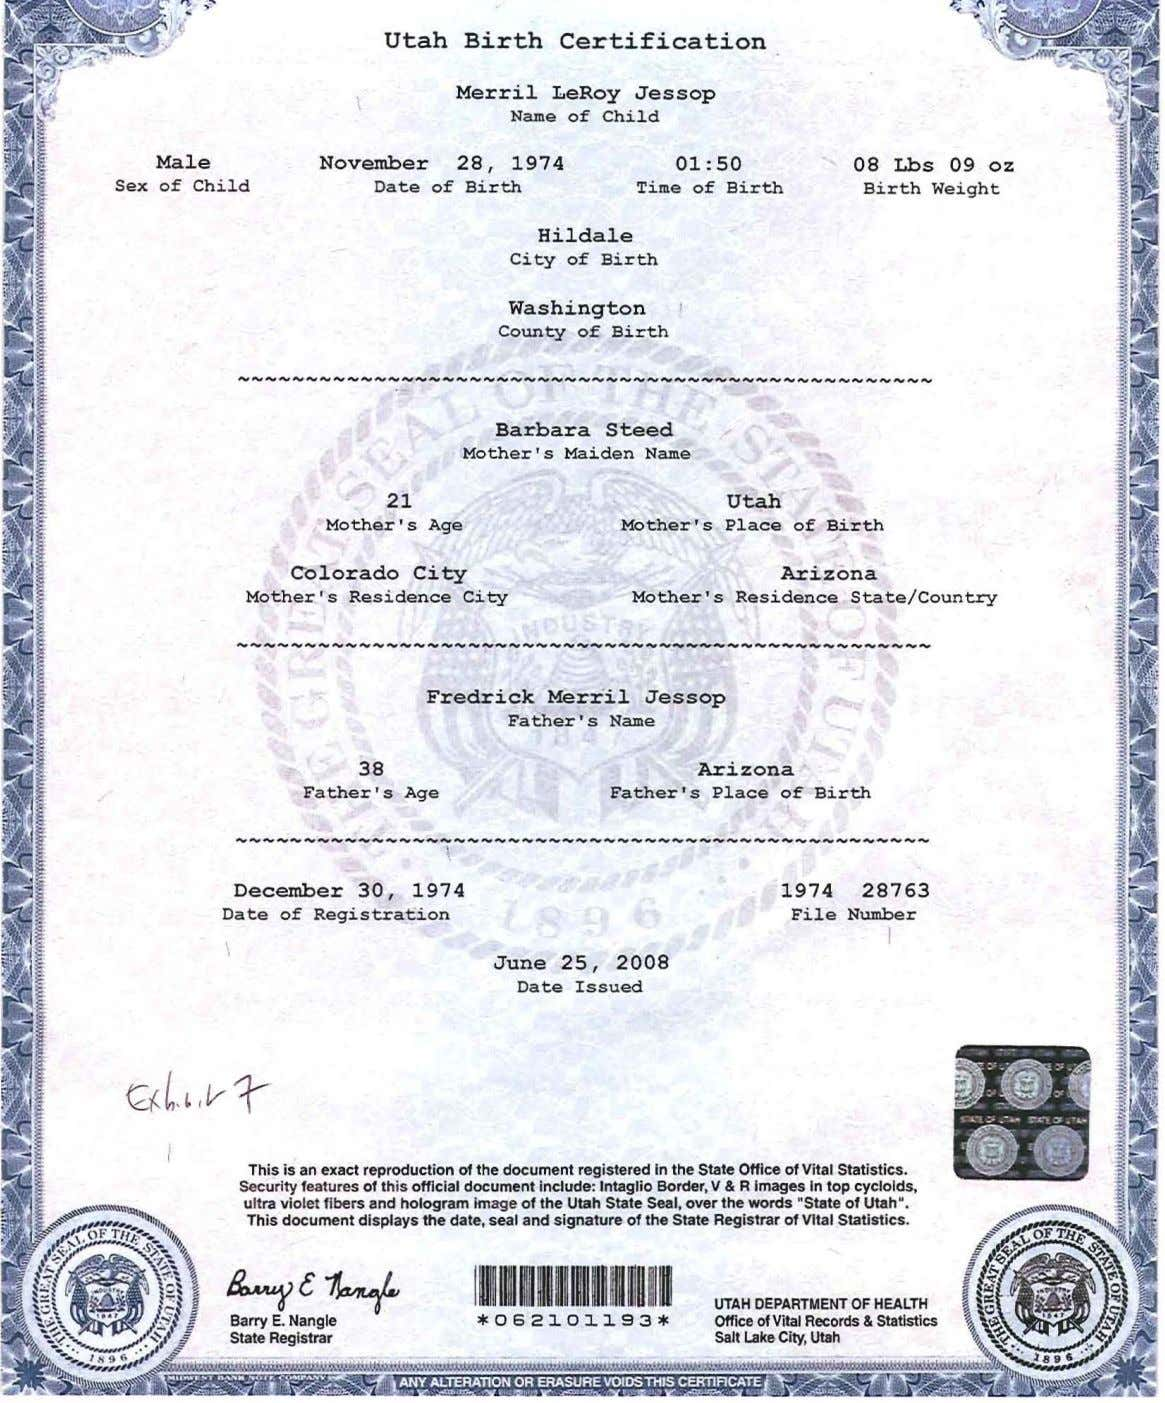 Utah Birth Certification Merri1 LeRoy Jessop Name of Child Male November 28, 1974 01:50 08